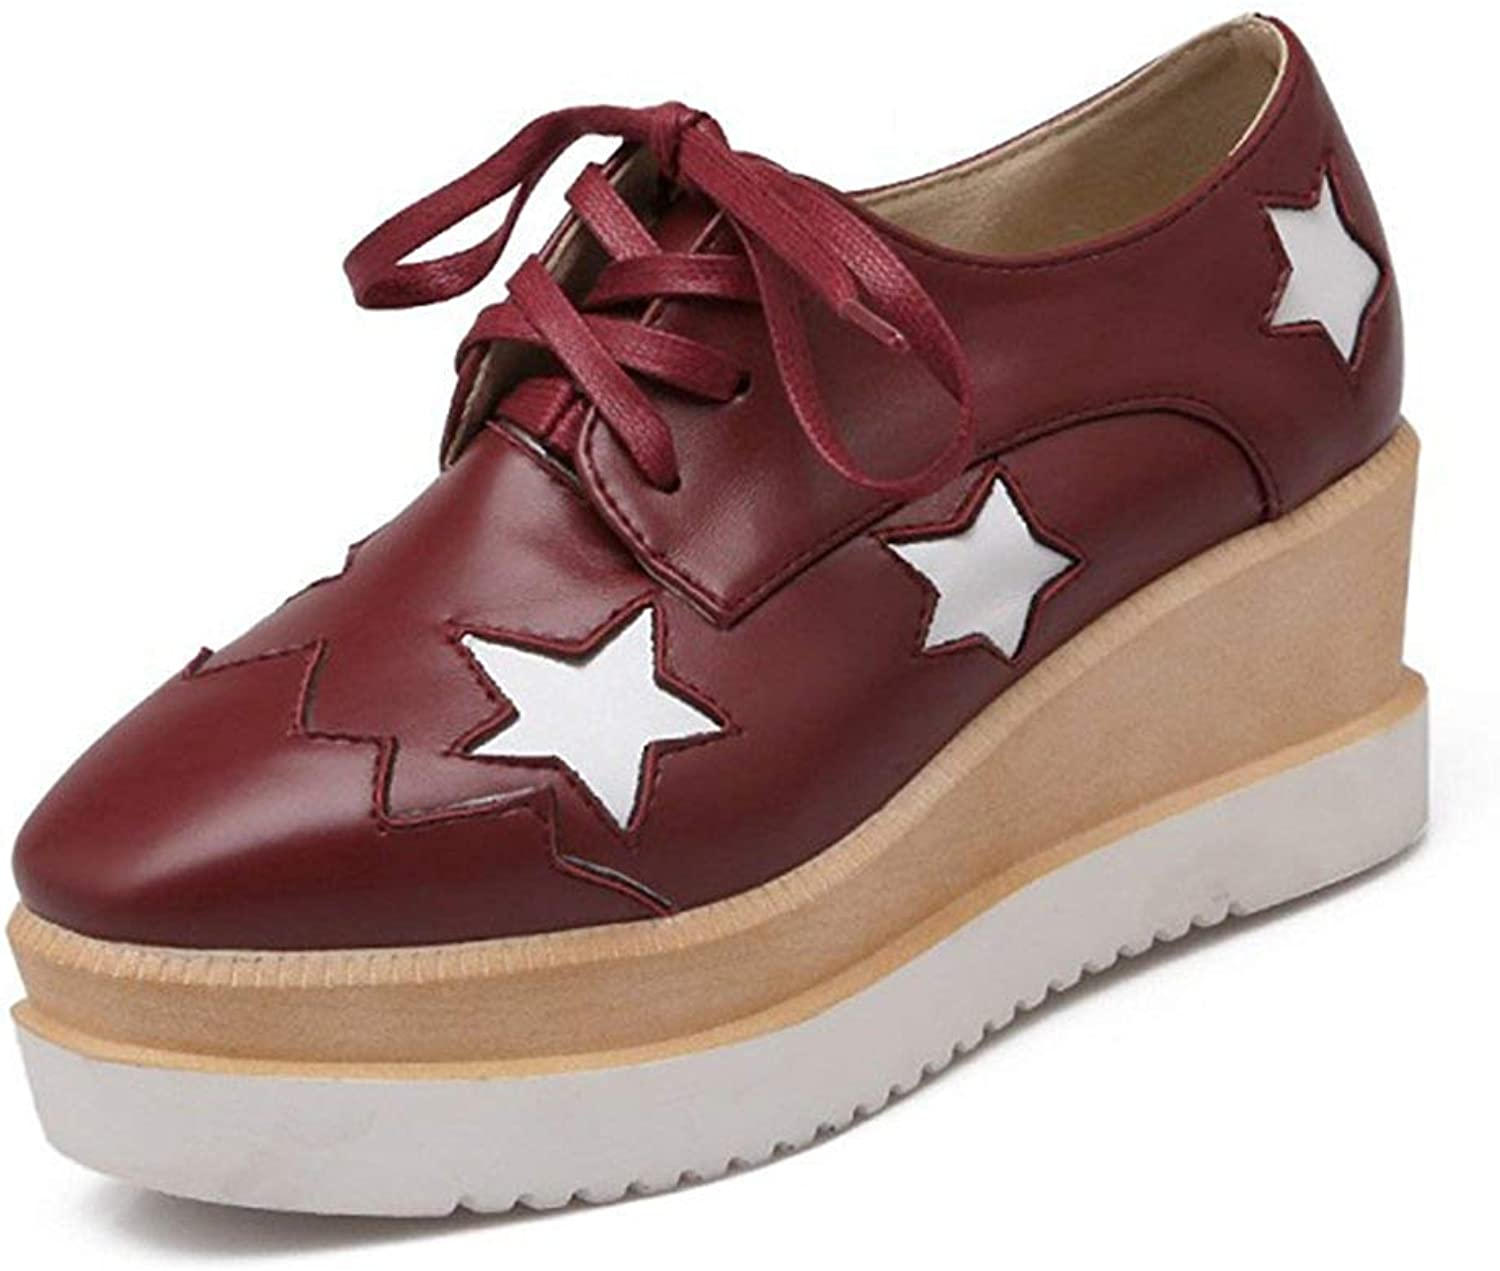 Unm Women's Casual Star Square Toe Thick Sole Platform Sneakers Dress Wedge Mid Heel Lace Up Oxfords shoes